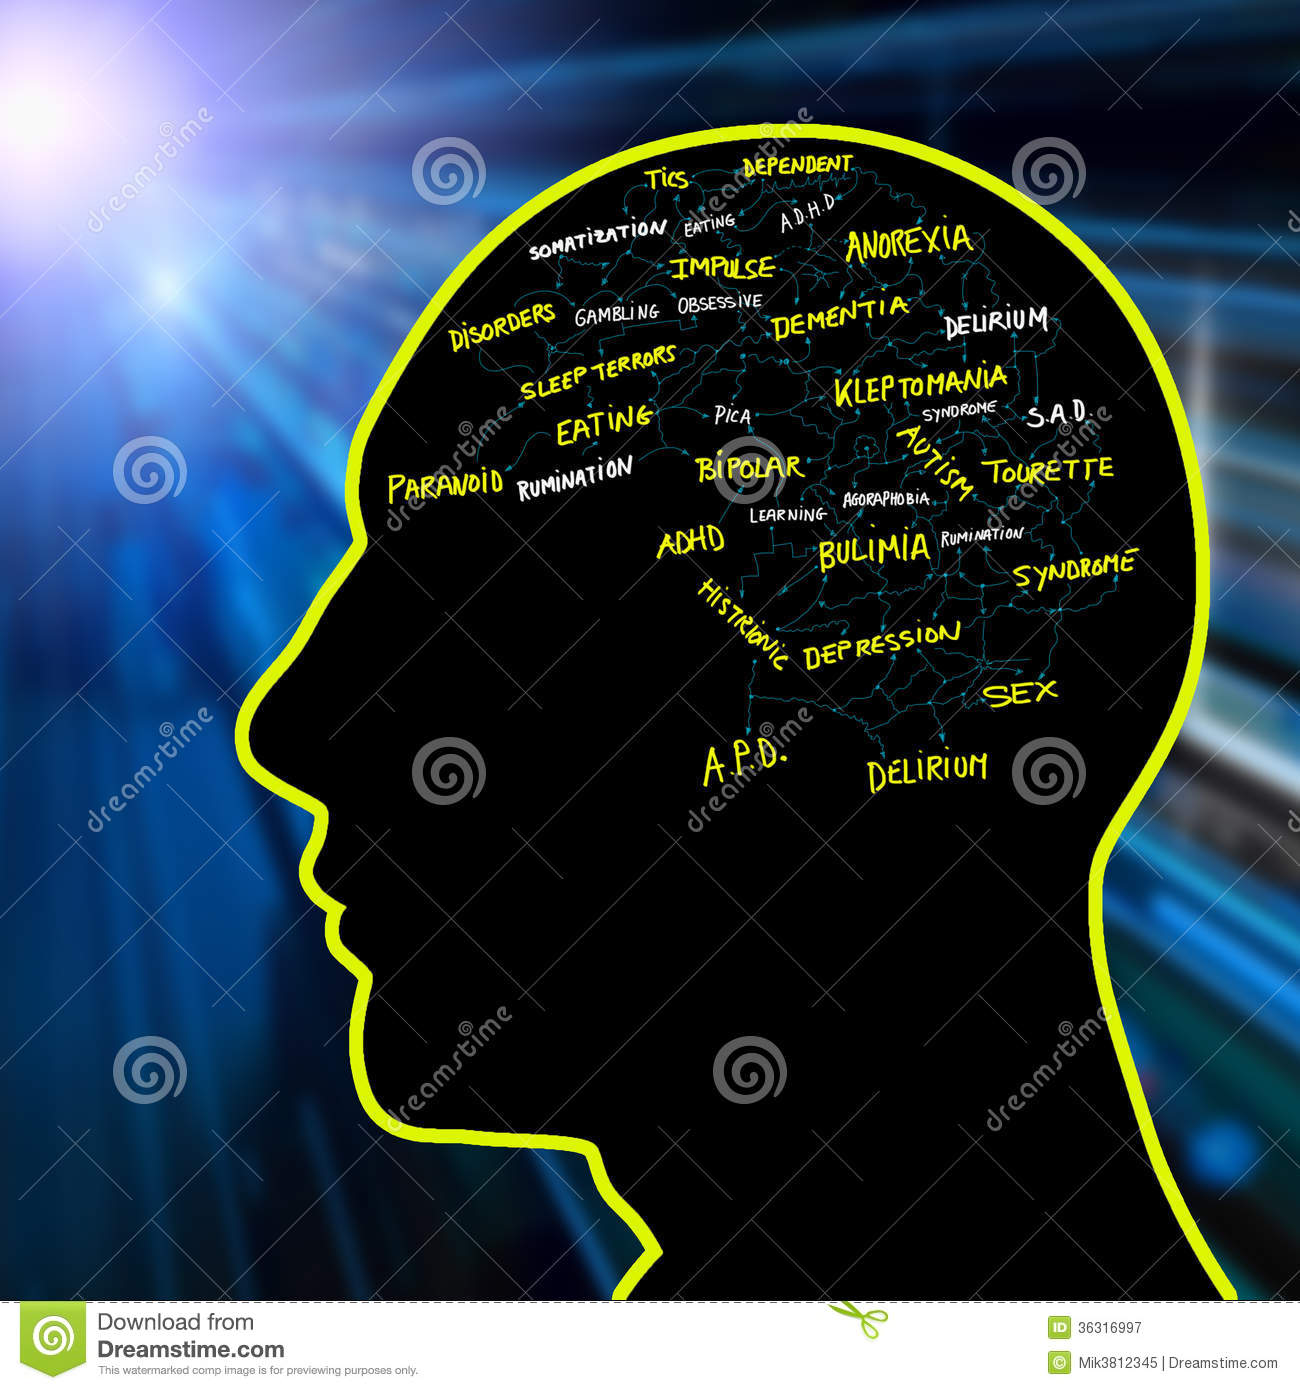 Psychological Disorders Royalty Free Stock Photography - Image ...